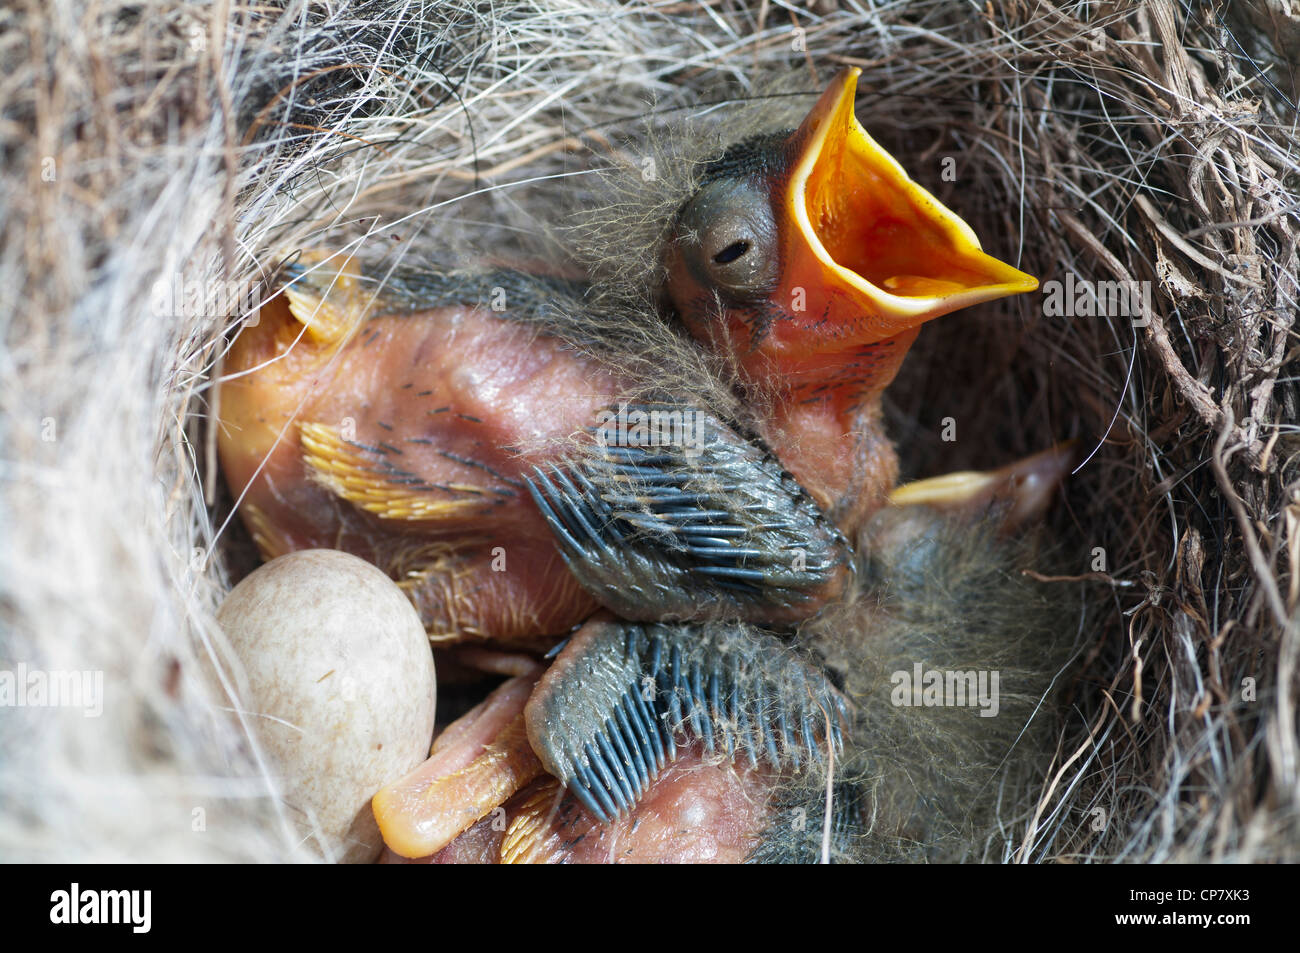 sparrow nest eggs stockfotos sparrow nest eggs bilder alamy. Black Bedroom Furniture Sets. Home Design Ideas